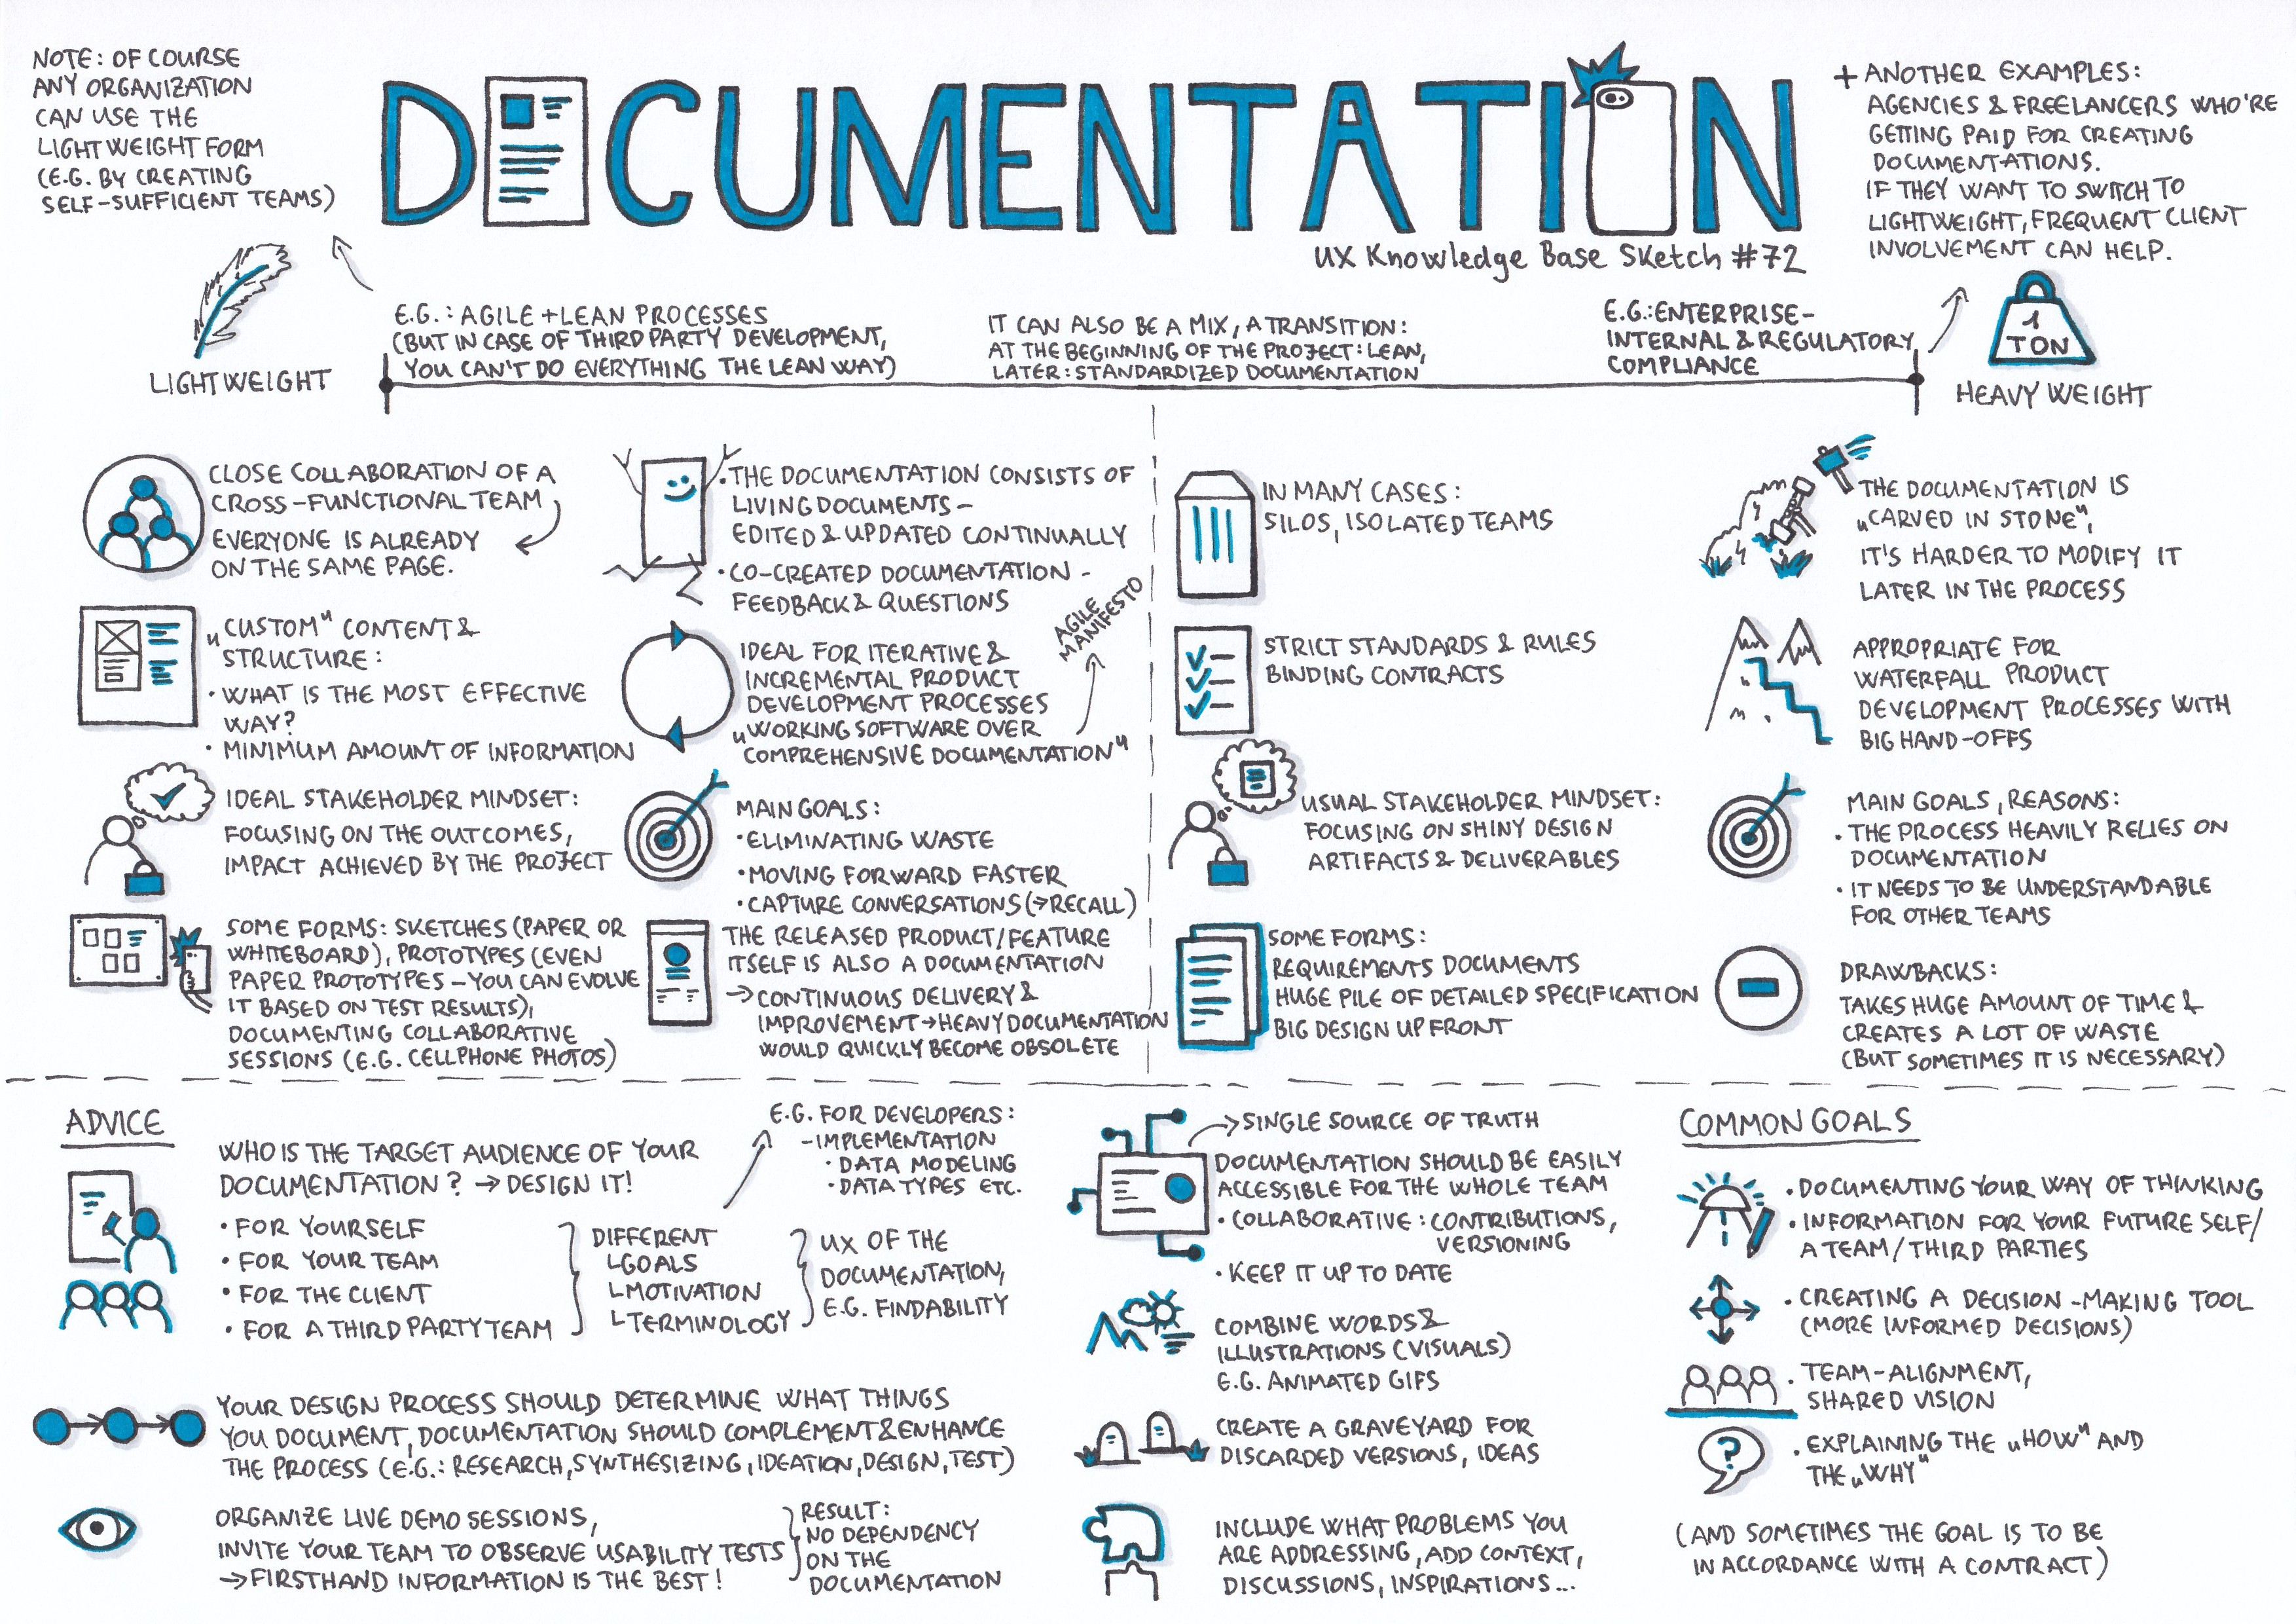 Documentation - UX Knowledge Base Sketch